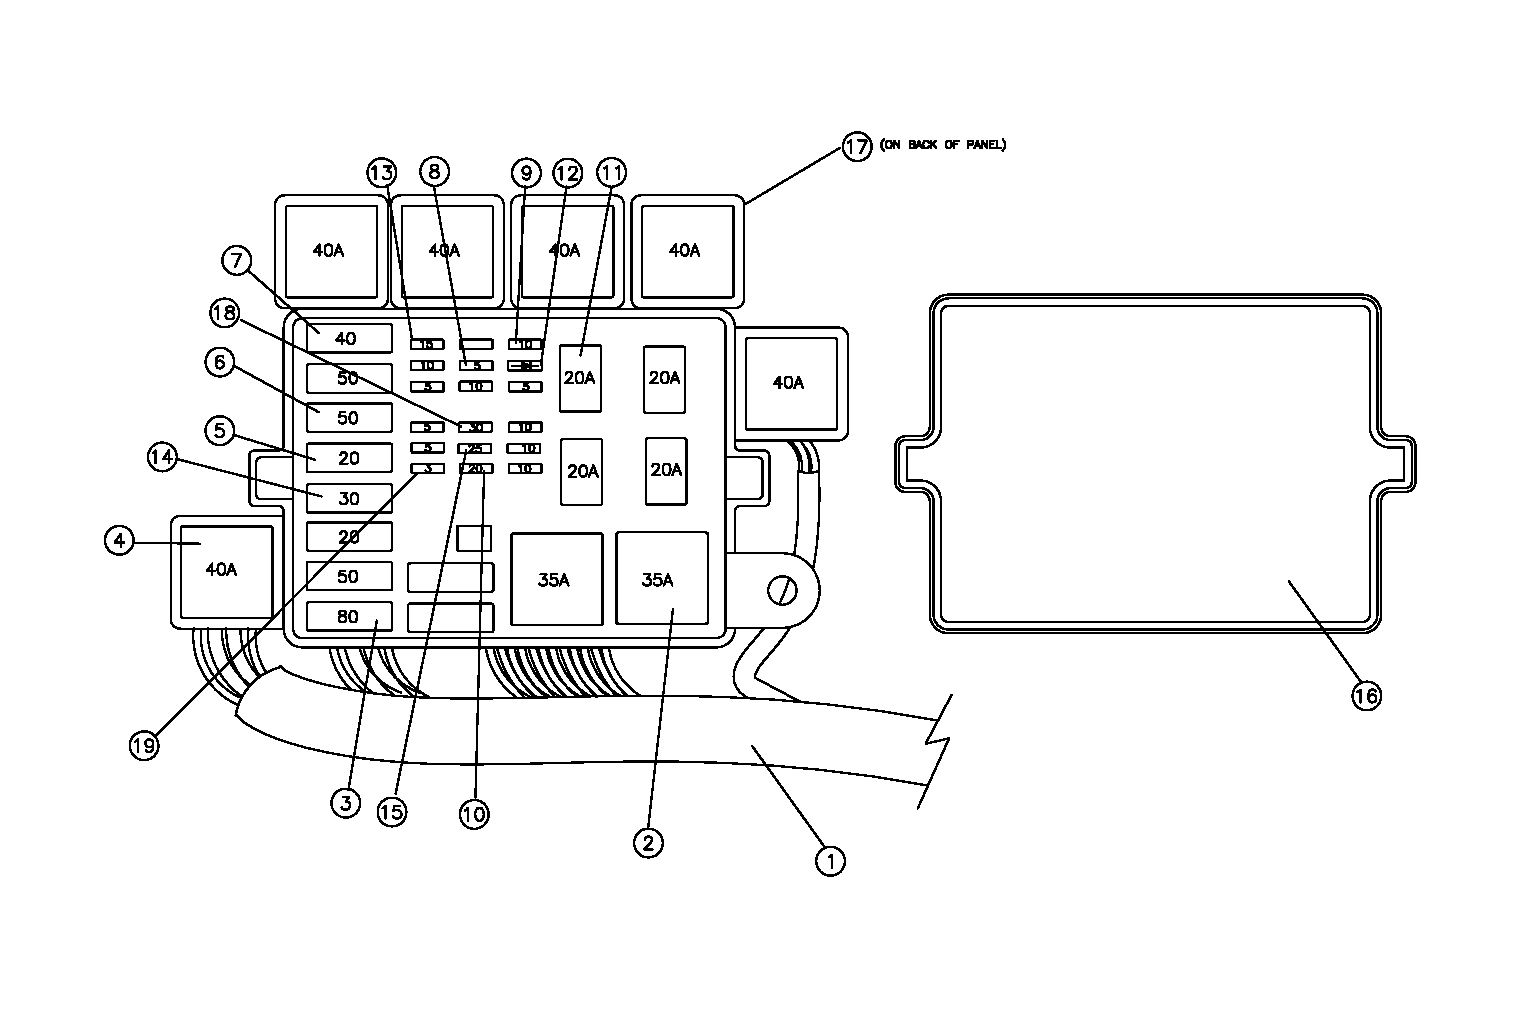 Diagram 11-A Fuse Panel Assembly